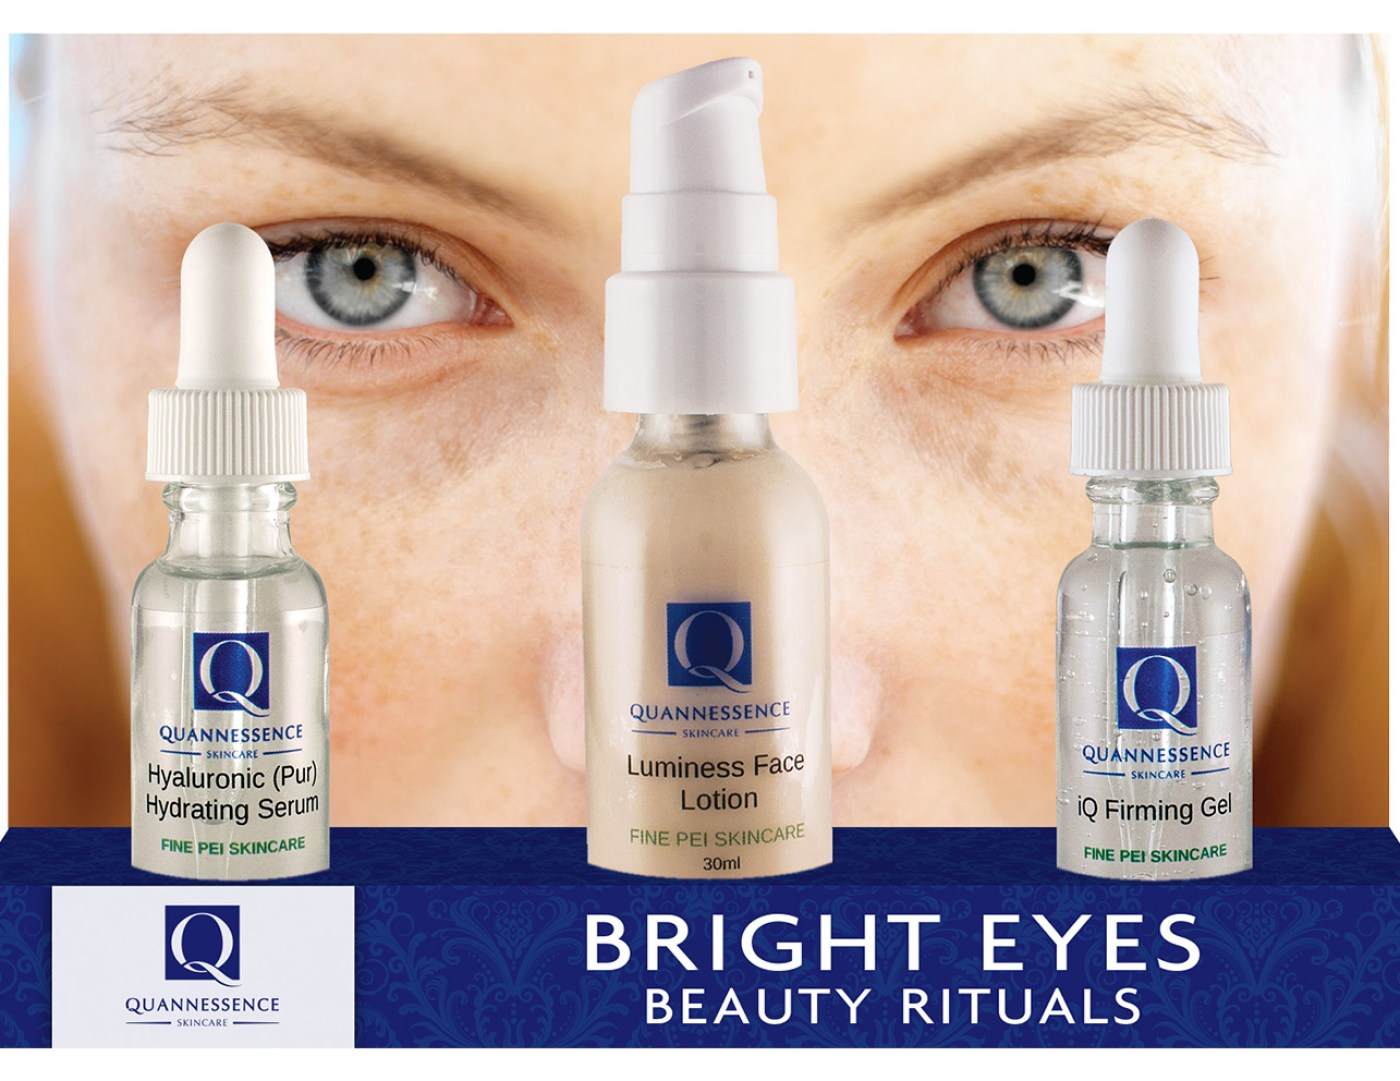 Quannessence Bright Eyes Beauty Rituals (3 Products)